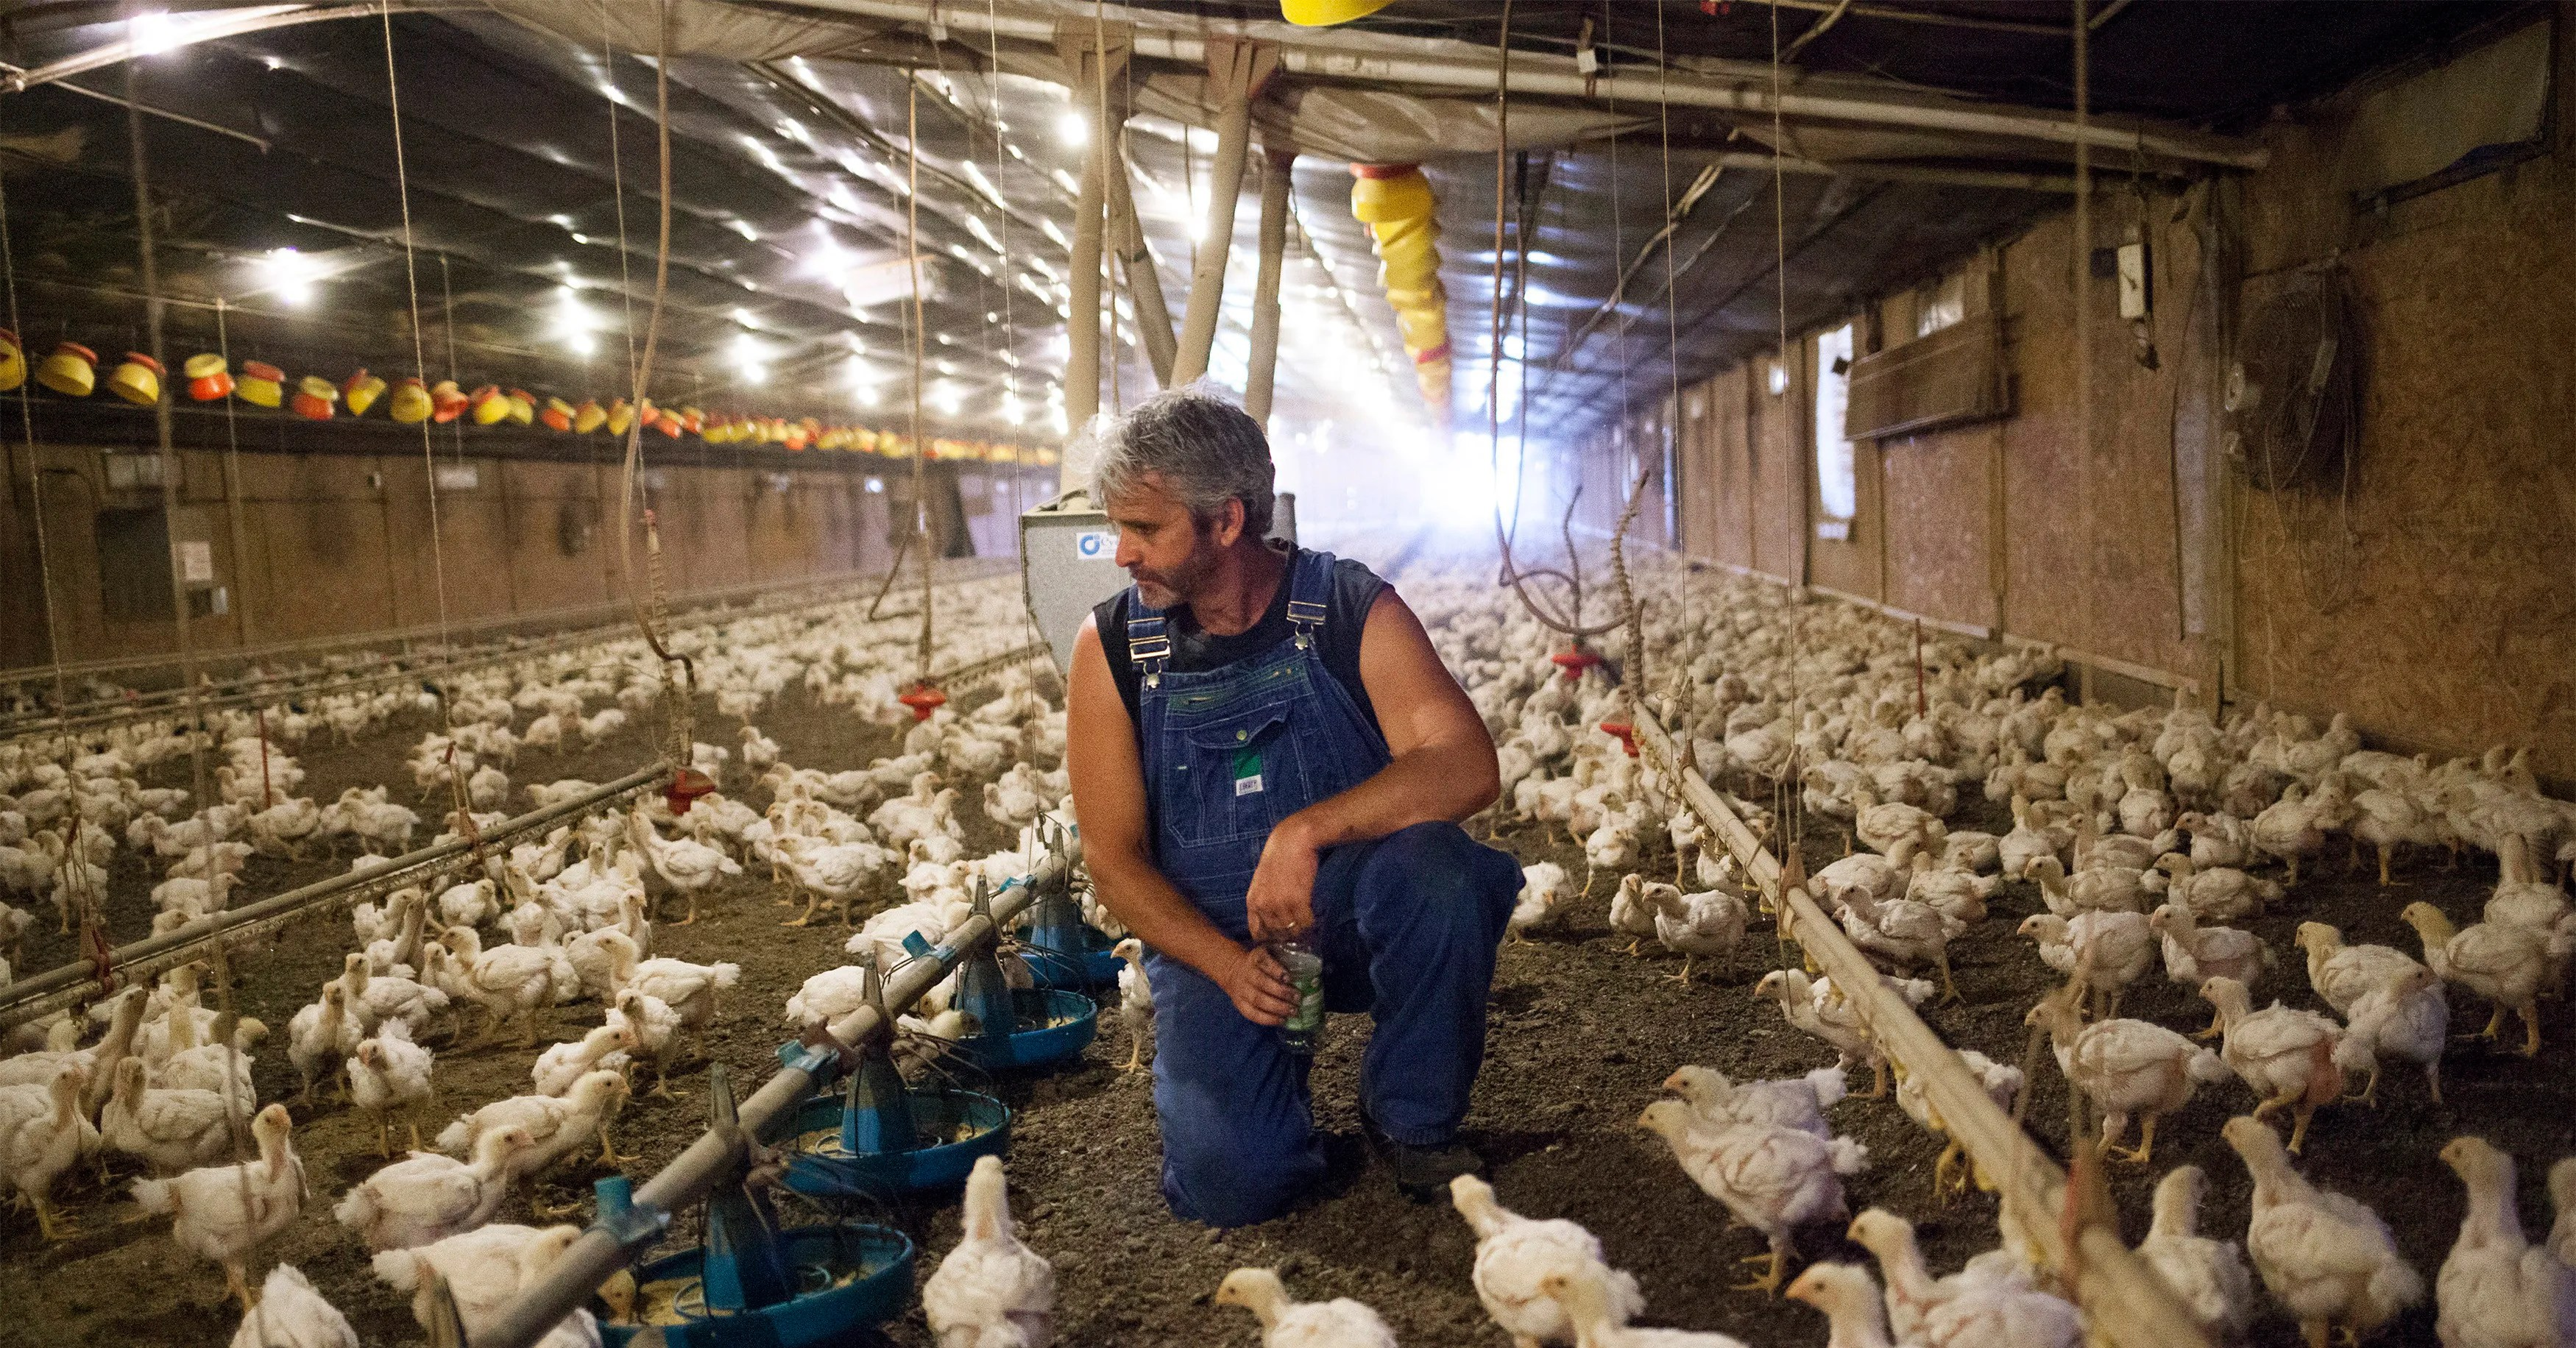 The Poultry Industry Responds To An Activist Farmer Wired